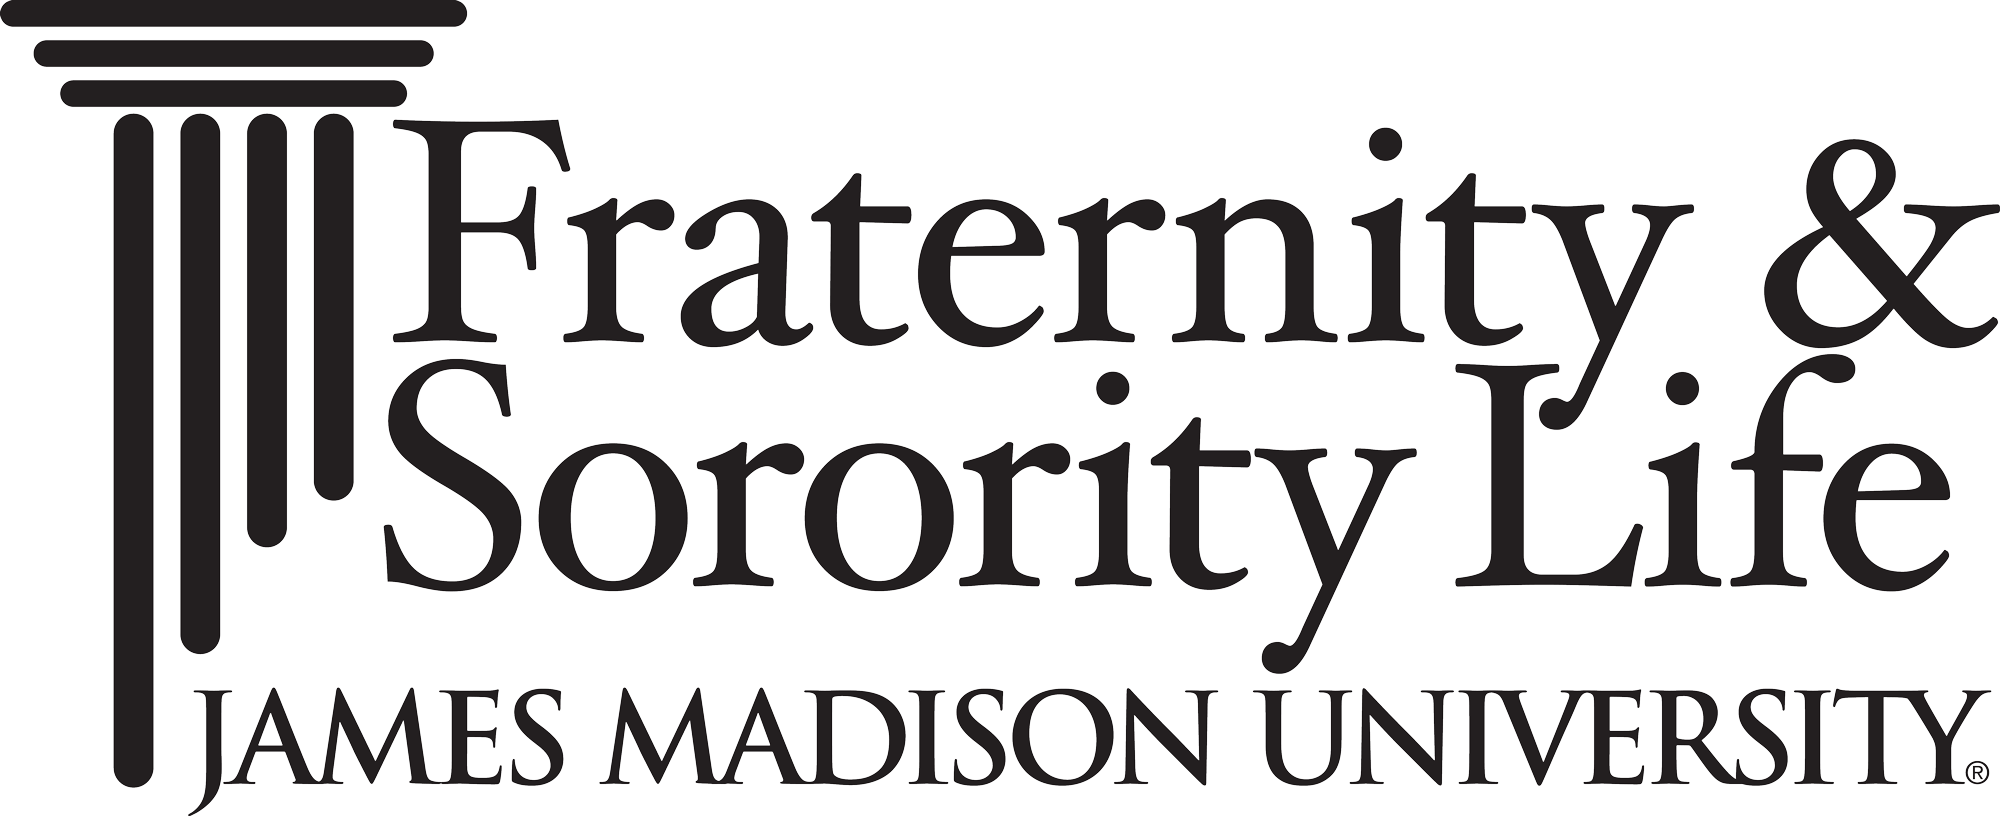 Image of the Fraternity and Sorority life logo